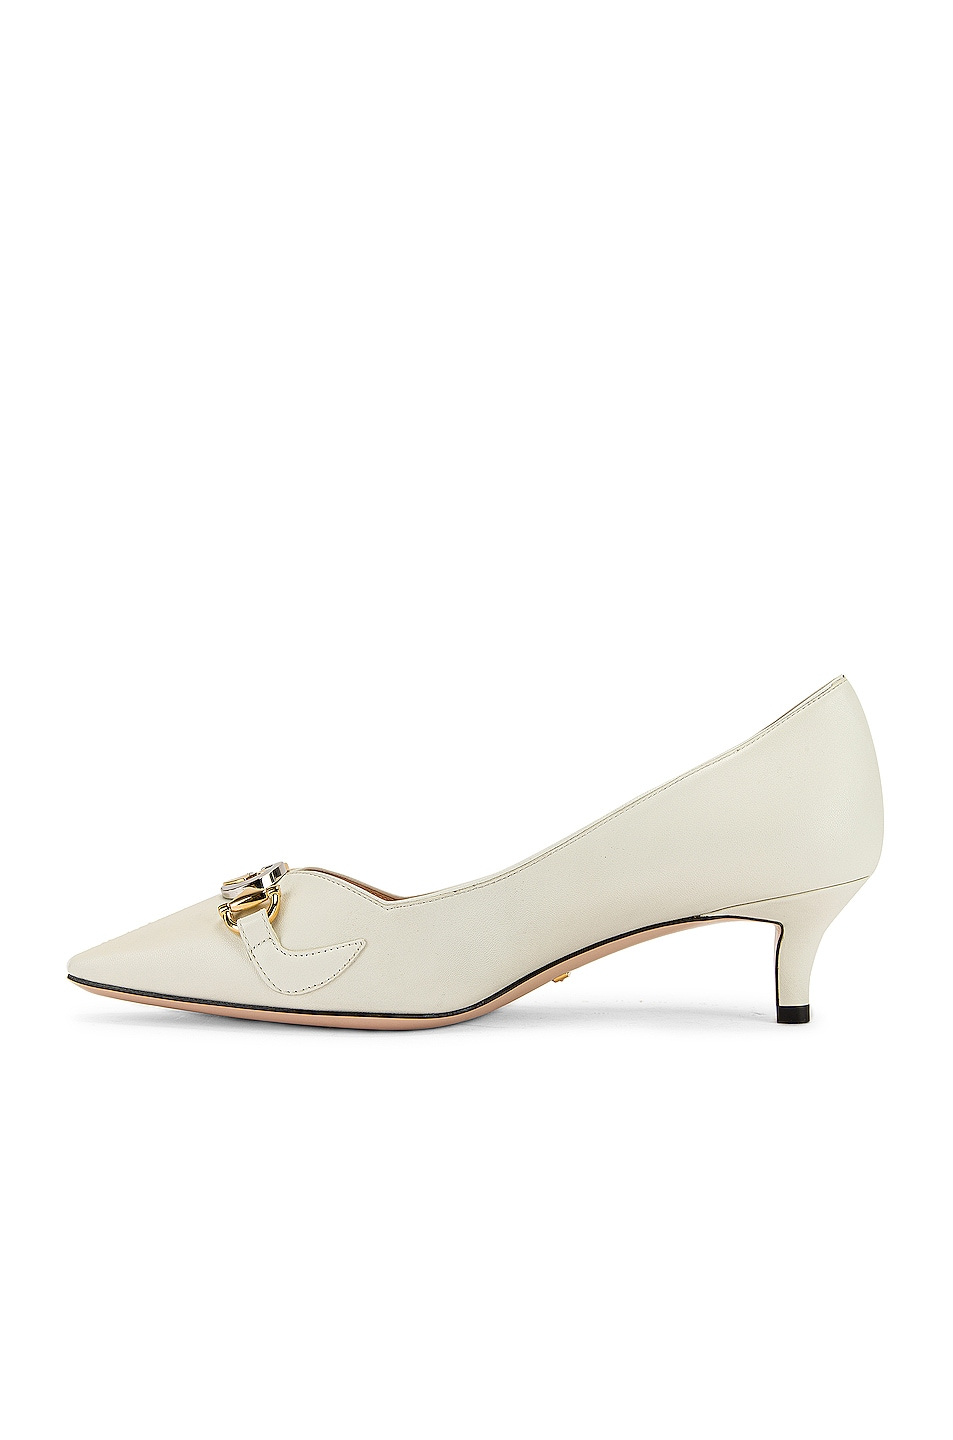 Image 5 of Gucci Low Heel Pumps in Dusty White